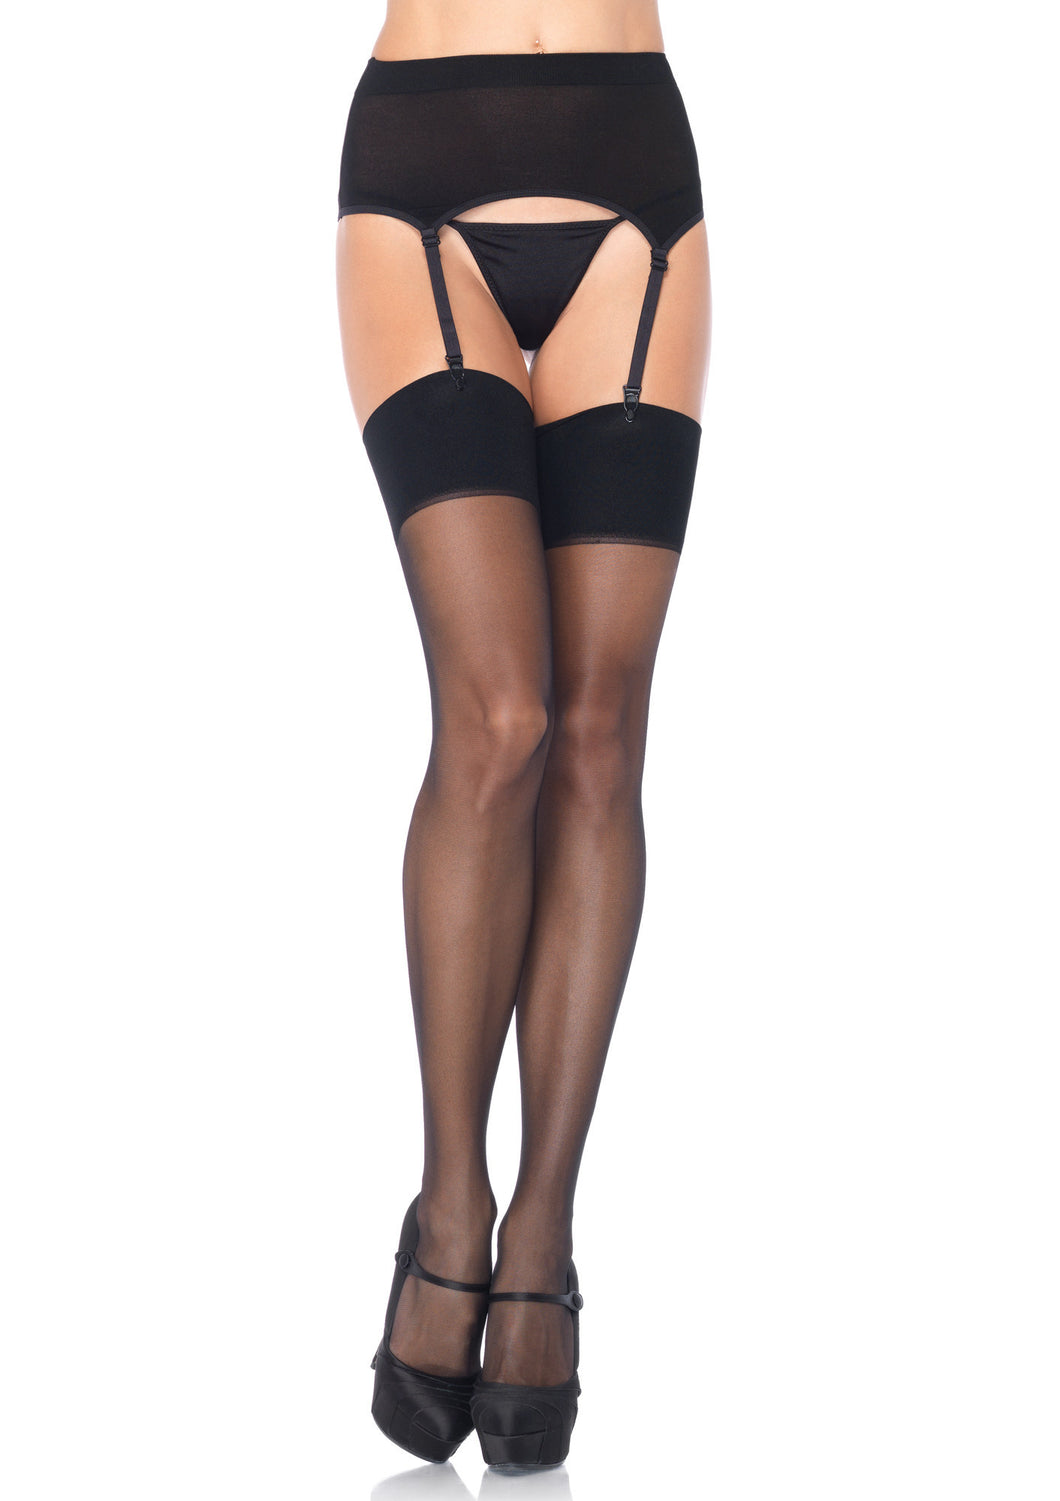 2PC.Spandex Sheer Garter Belt And Stocking Set